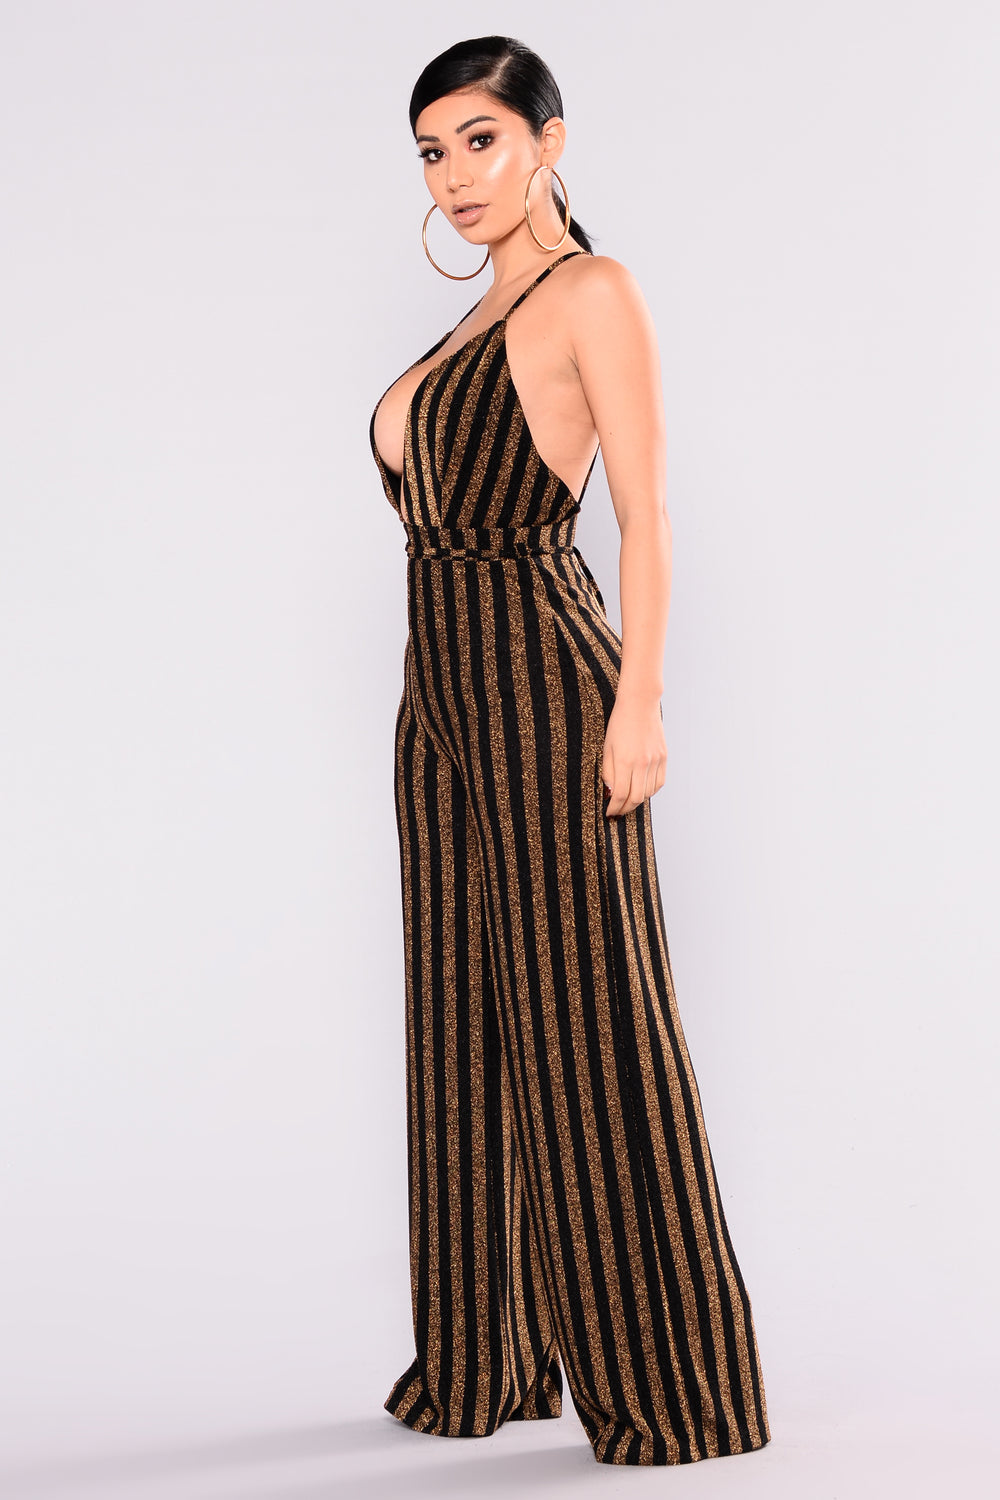 Kenna Metallic Jumpsuit - Black/Gold